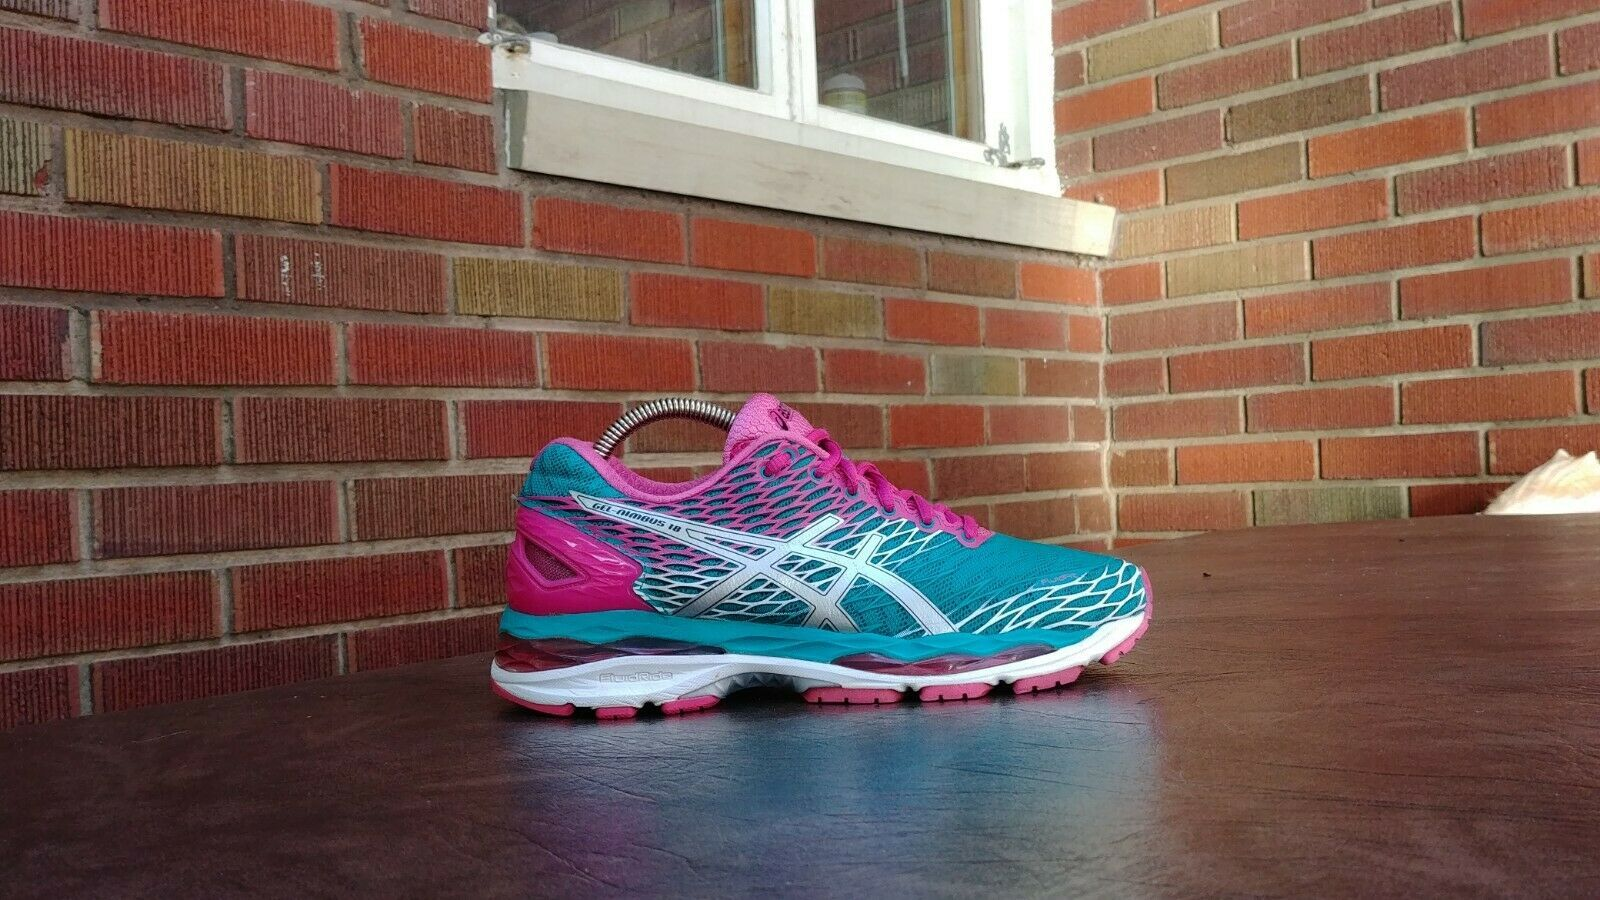 Womens Asics Gel Nimbus 18 Running Shoes SZ 7 Used Sneakers Trainers image 2